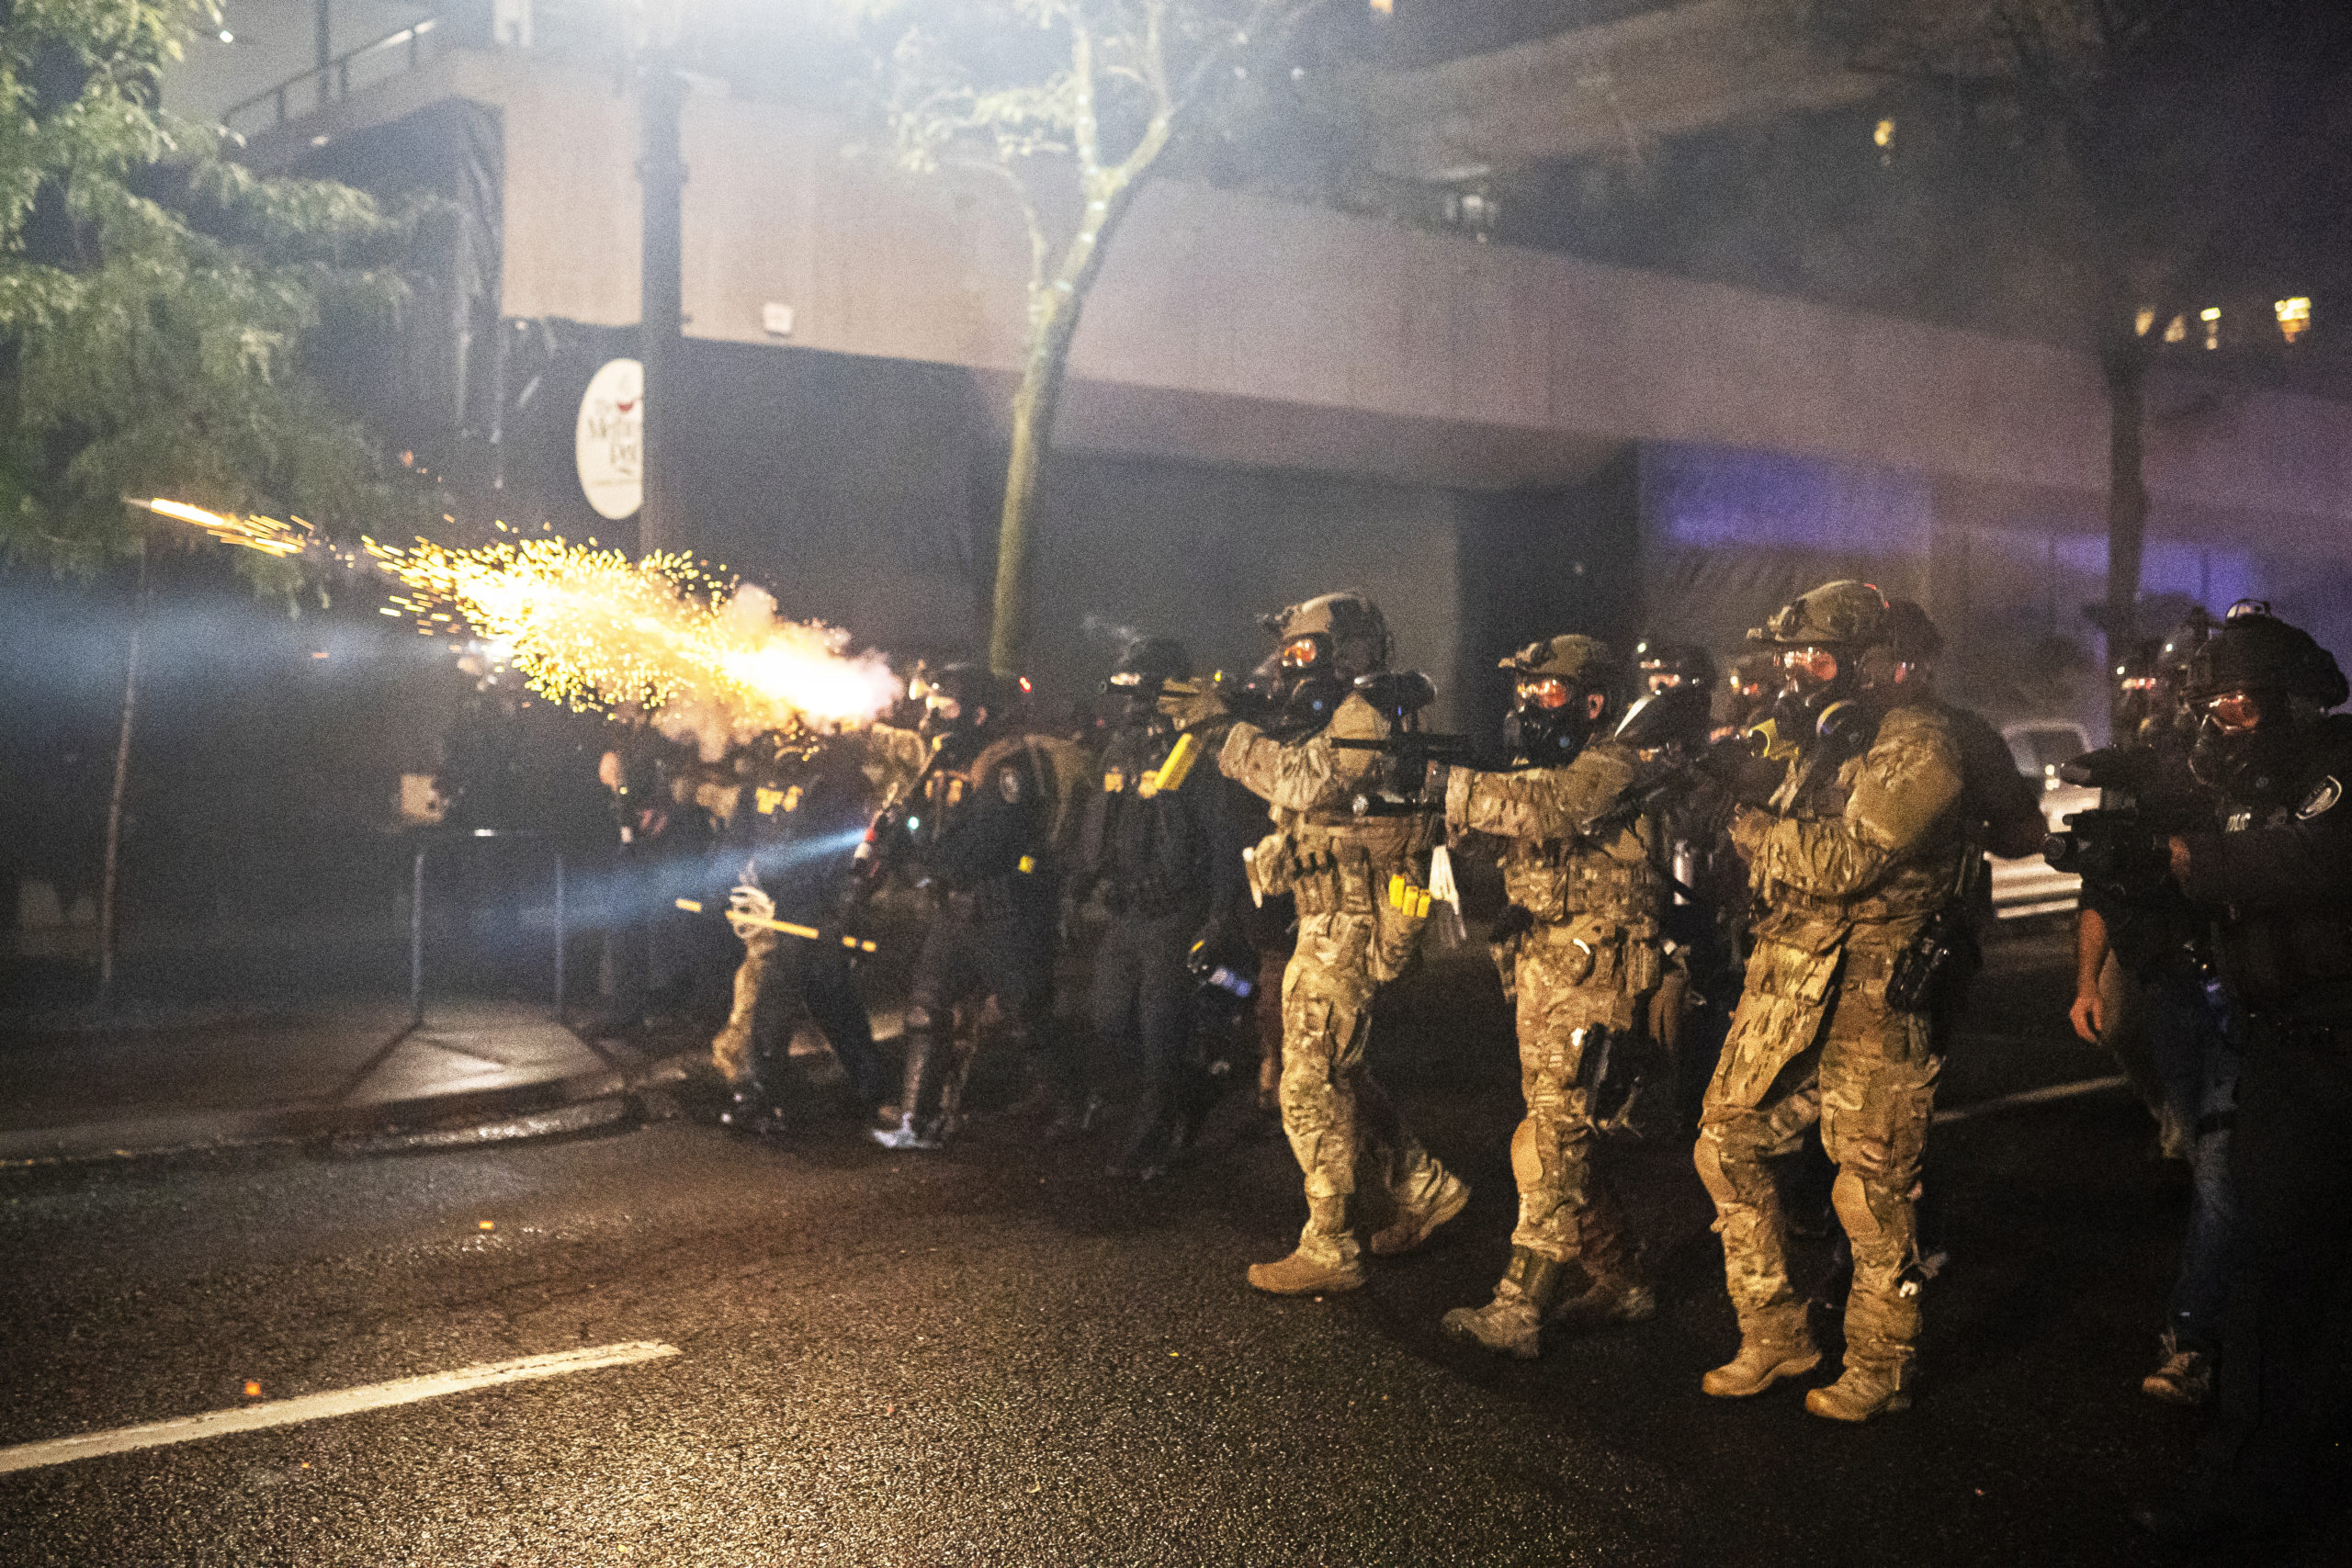 PORTLAND, OR - SEPTEMBER 23: Federal officers disperse a crowd on September 23, 2020 in Portland, United States. Violent protests erupted across the nation Wednesday following the results of a grand jury investigation into the police shooting death of Breonna Taylor. (Nathan Howard/Getty Images)